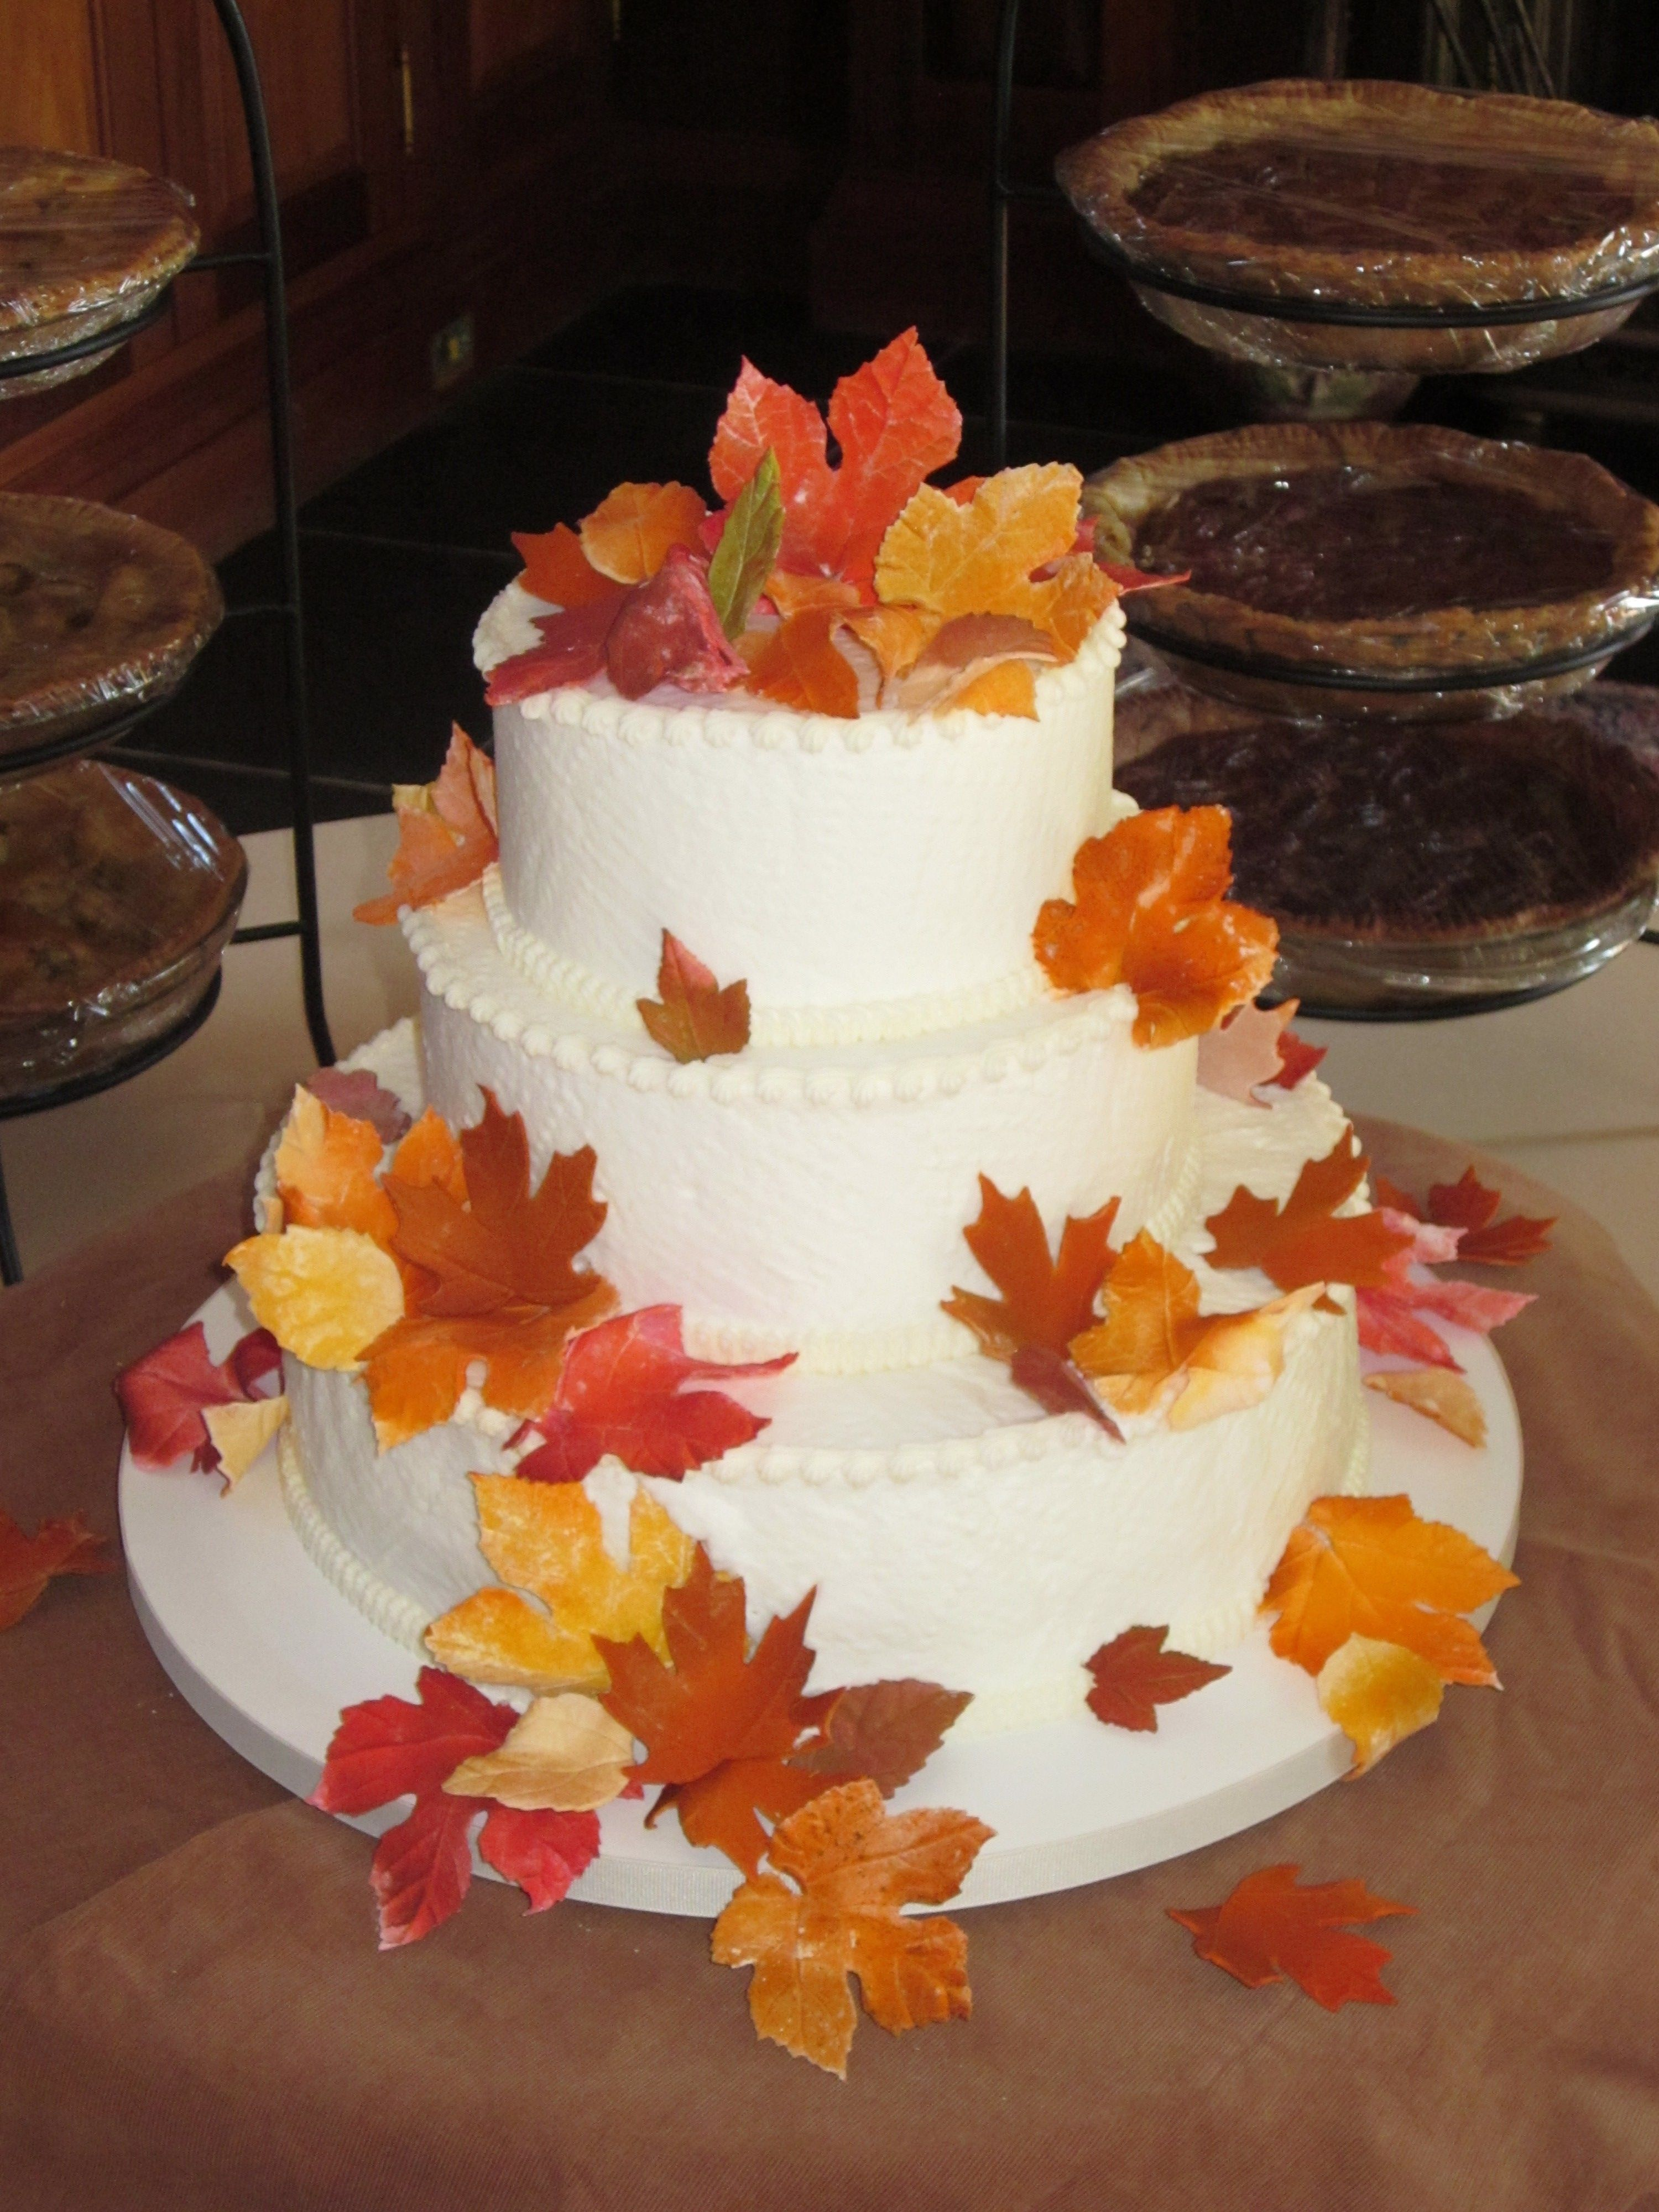 Fondant fall leaves adorn this simple wedding cake in ...